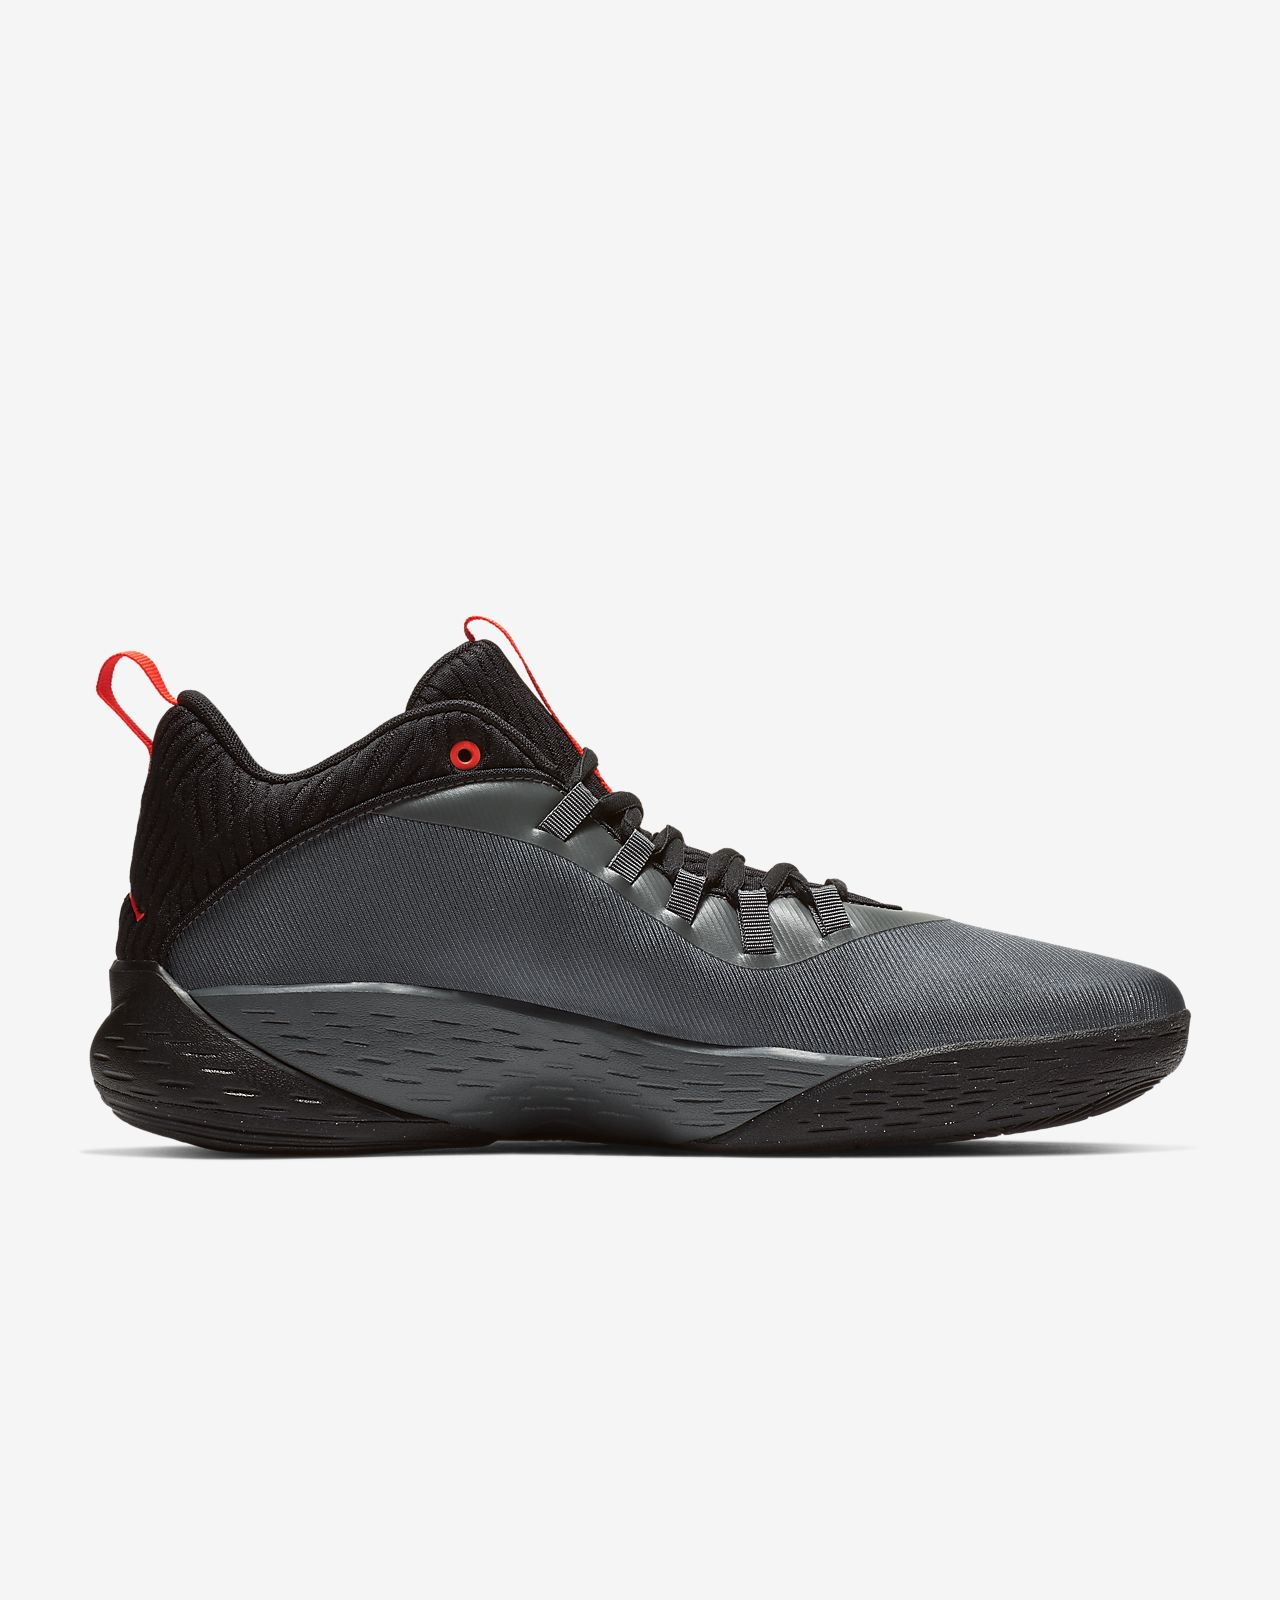 promo code b1152 bfd52 Fly MVP Low Men s Basketball Shoe Jordan Super.Fly MVP Low Men s Basketball  Shoe